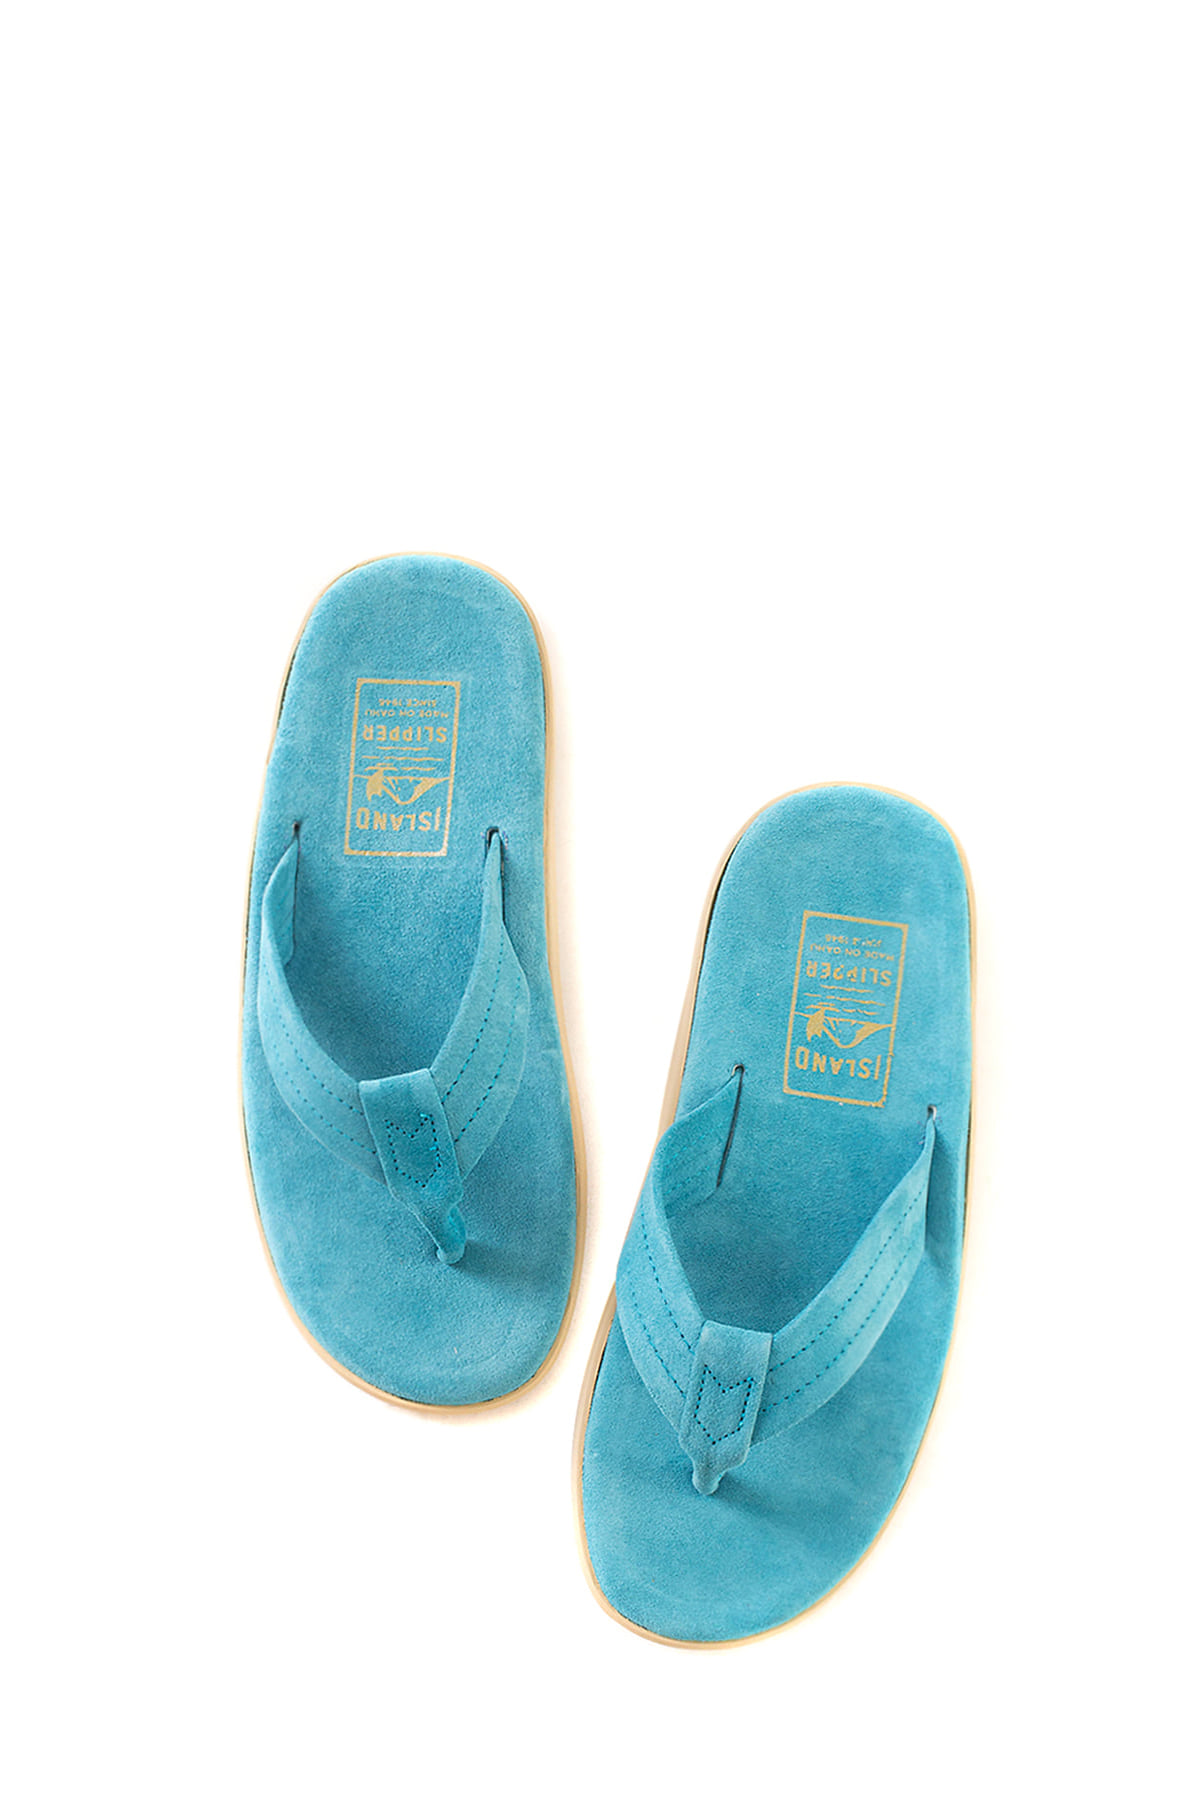 ISLAND SLIPPER : PT203 (Turquoise Suede)